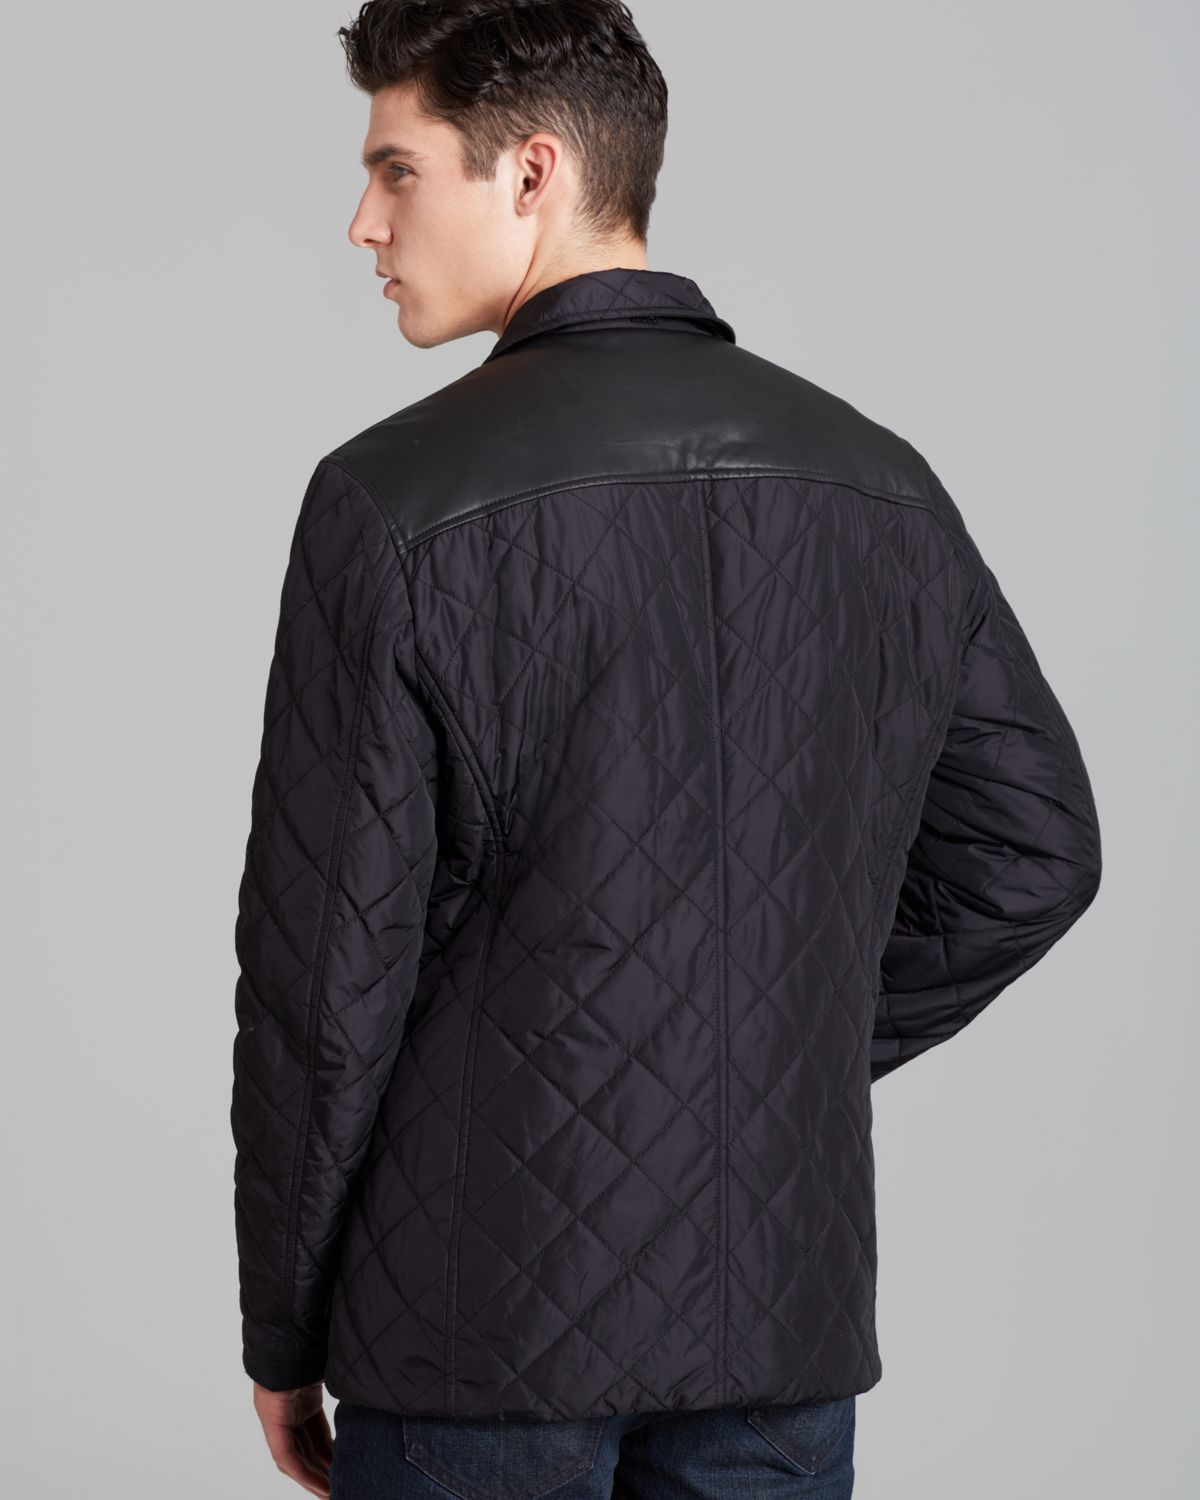 Michael kors Quilted Car Coat in Black for Men | Lyst